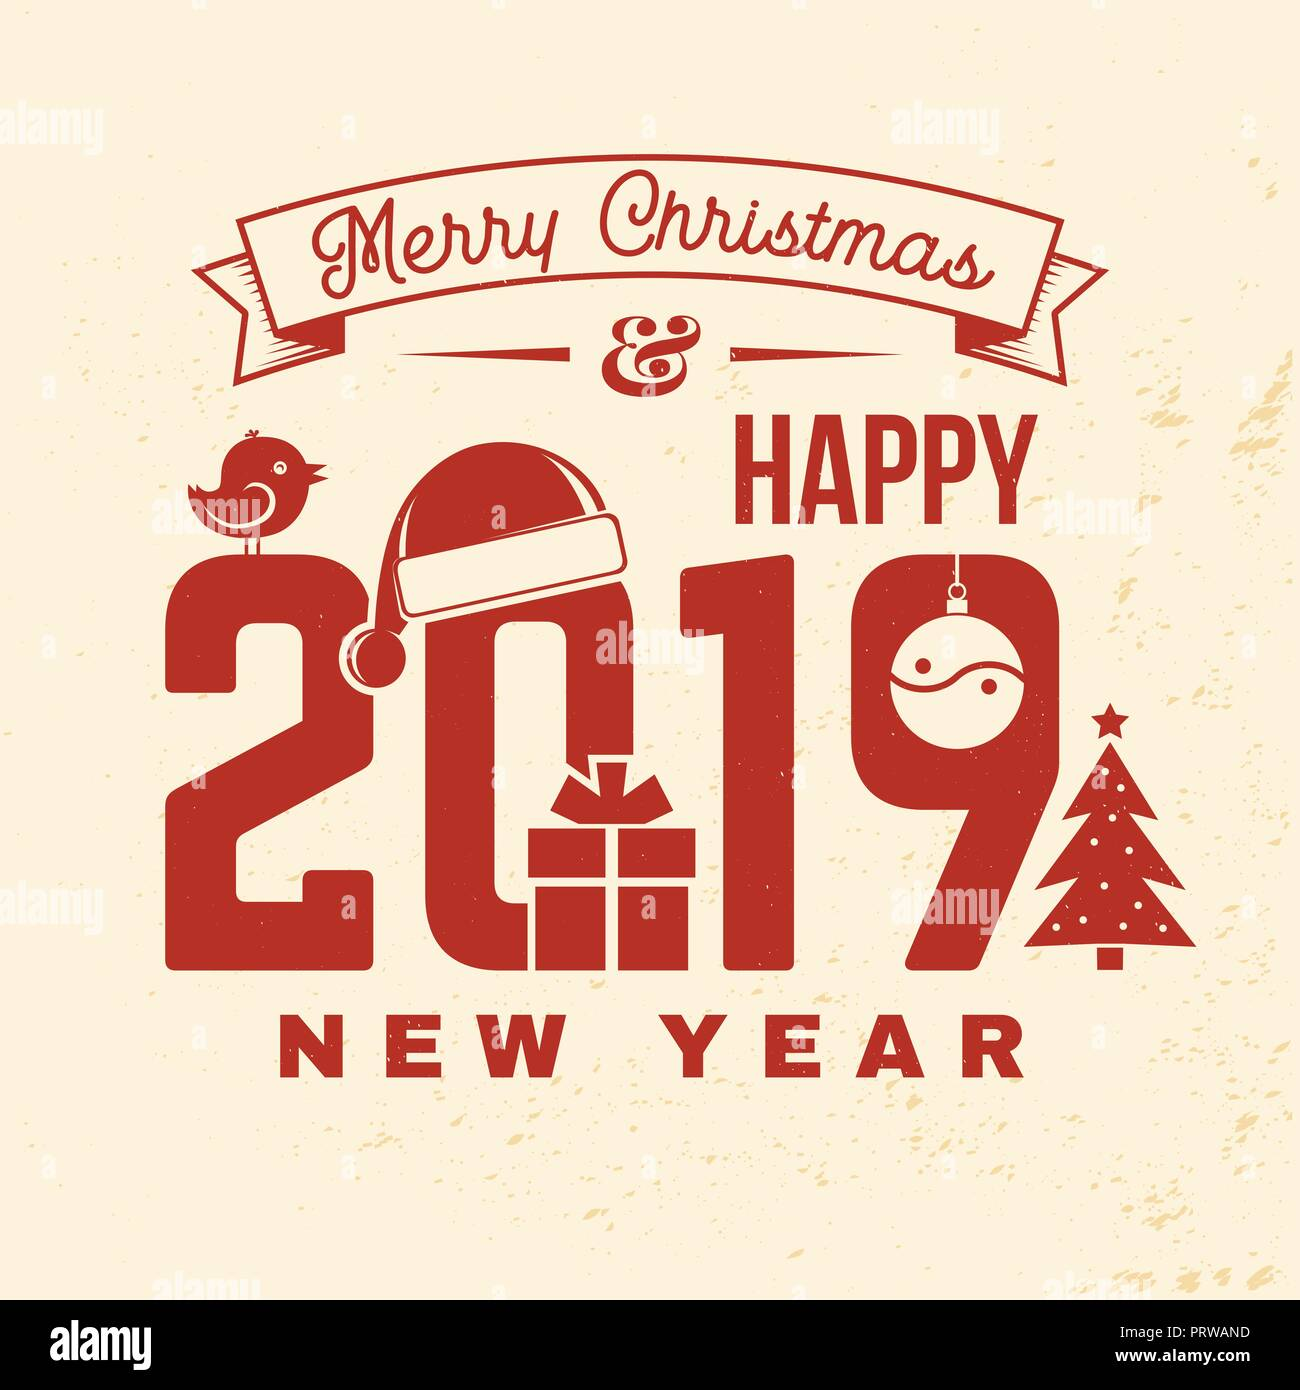 Merry Christmas 2019.Merry Christmas And 2019 Happy New Year Stamp Sticker Set